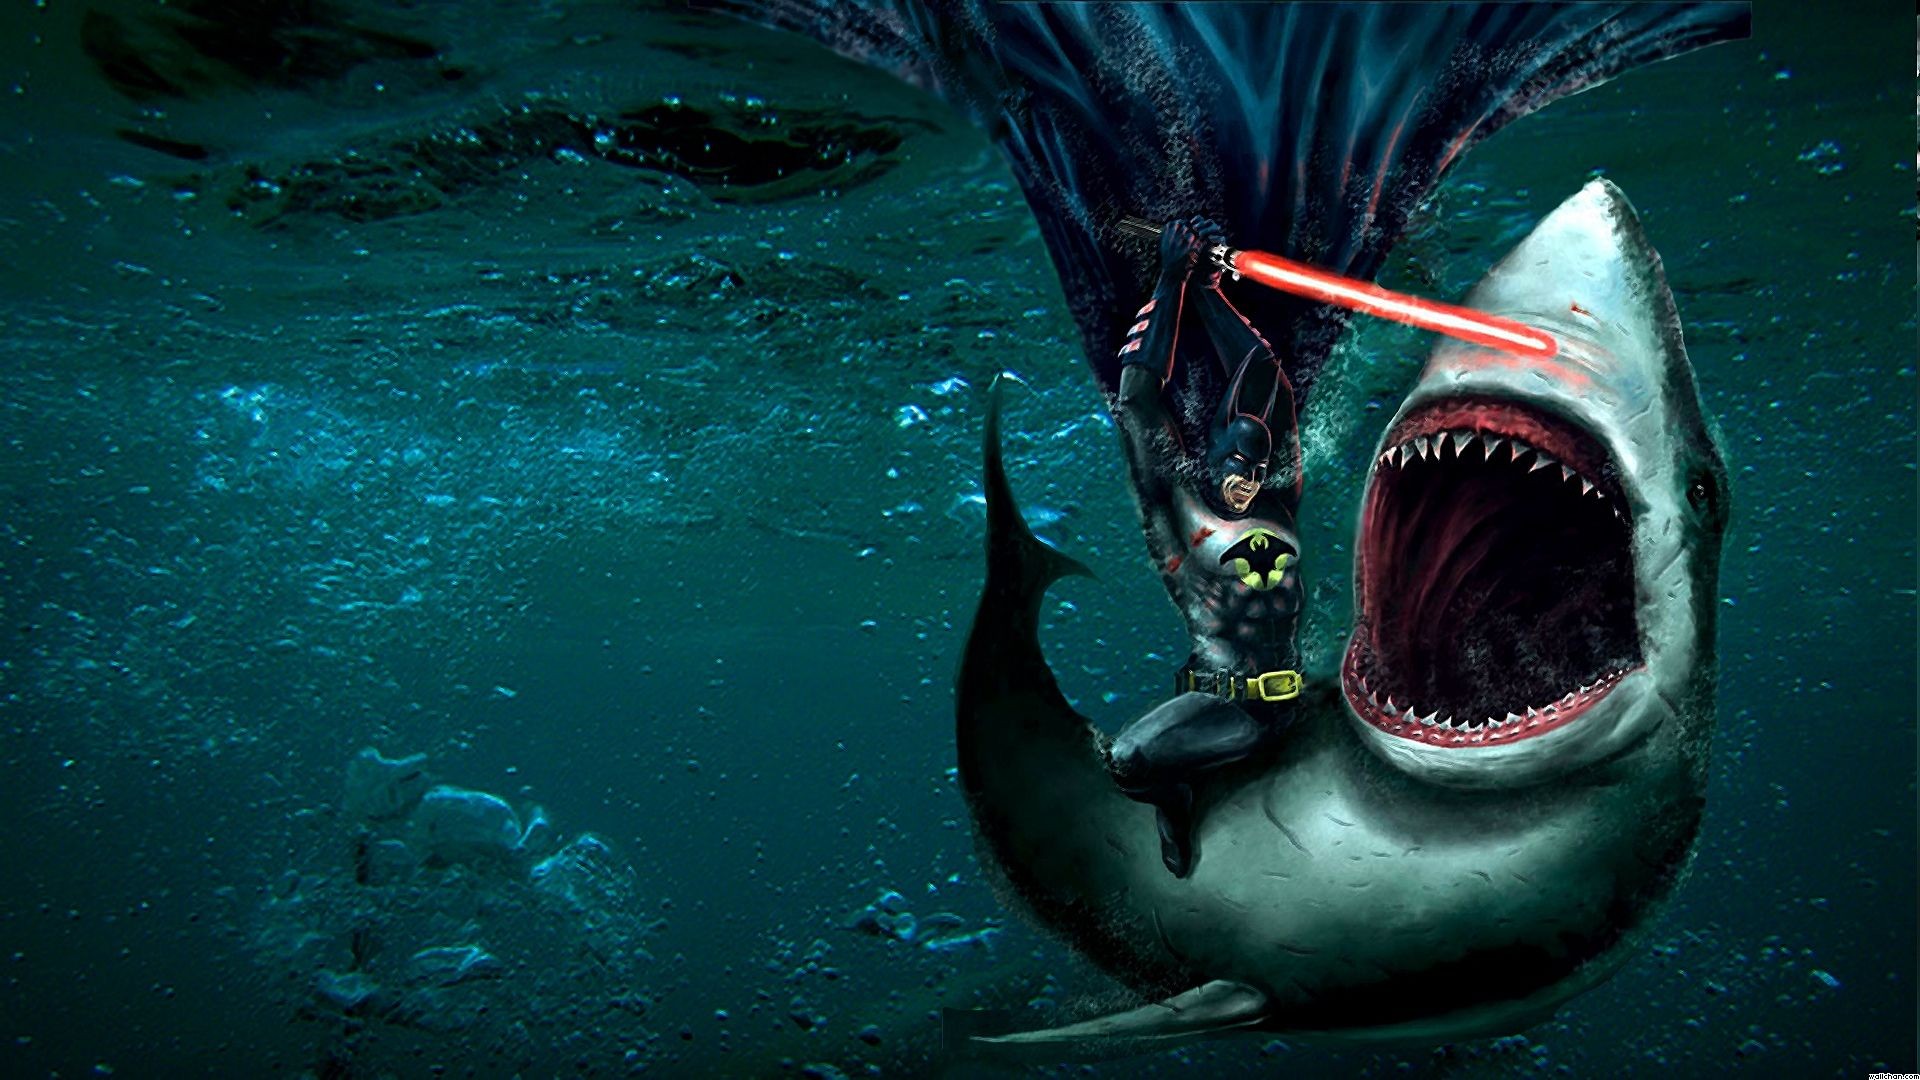 Batman Fights a Shark with a Lightsaber